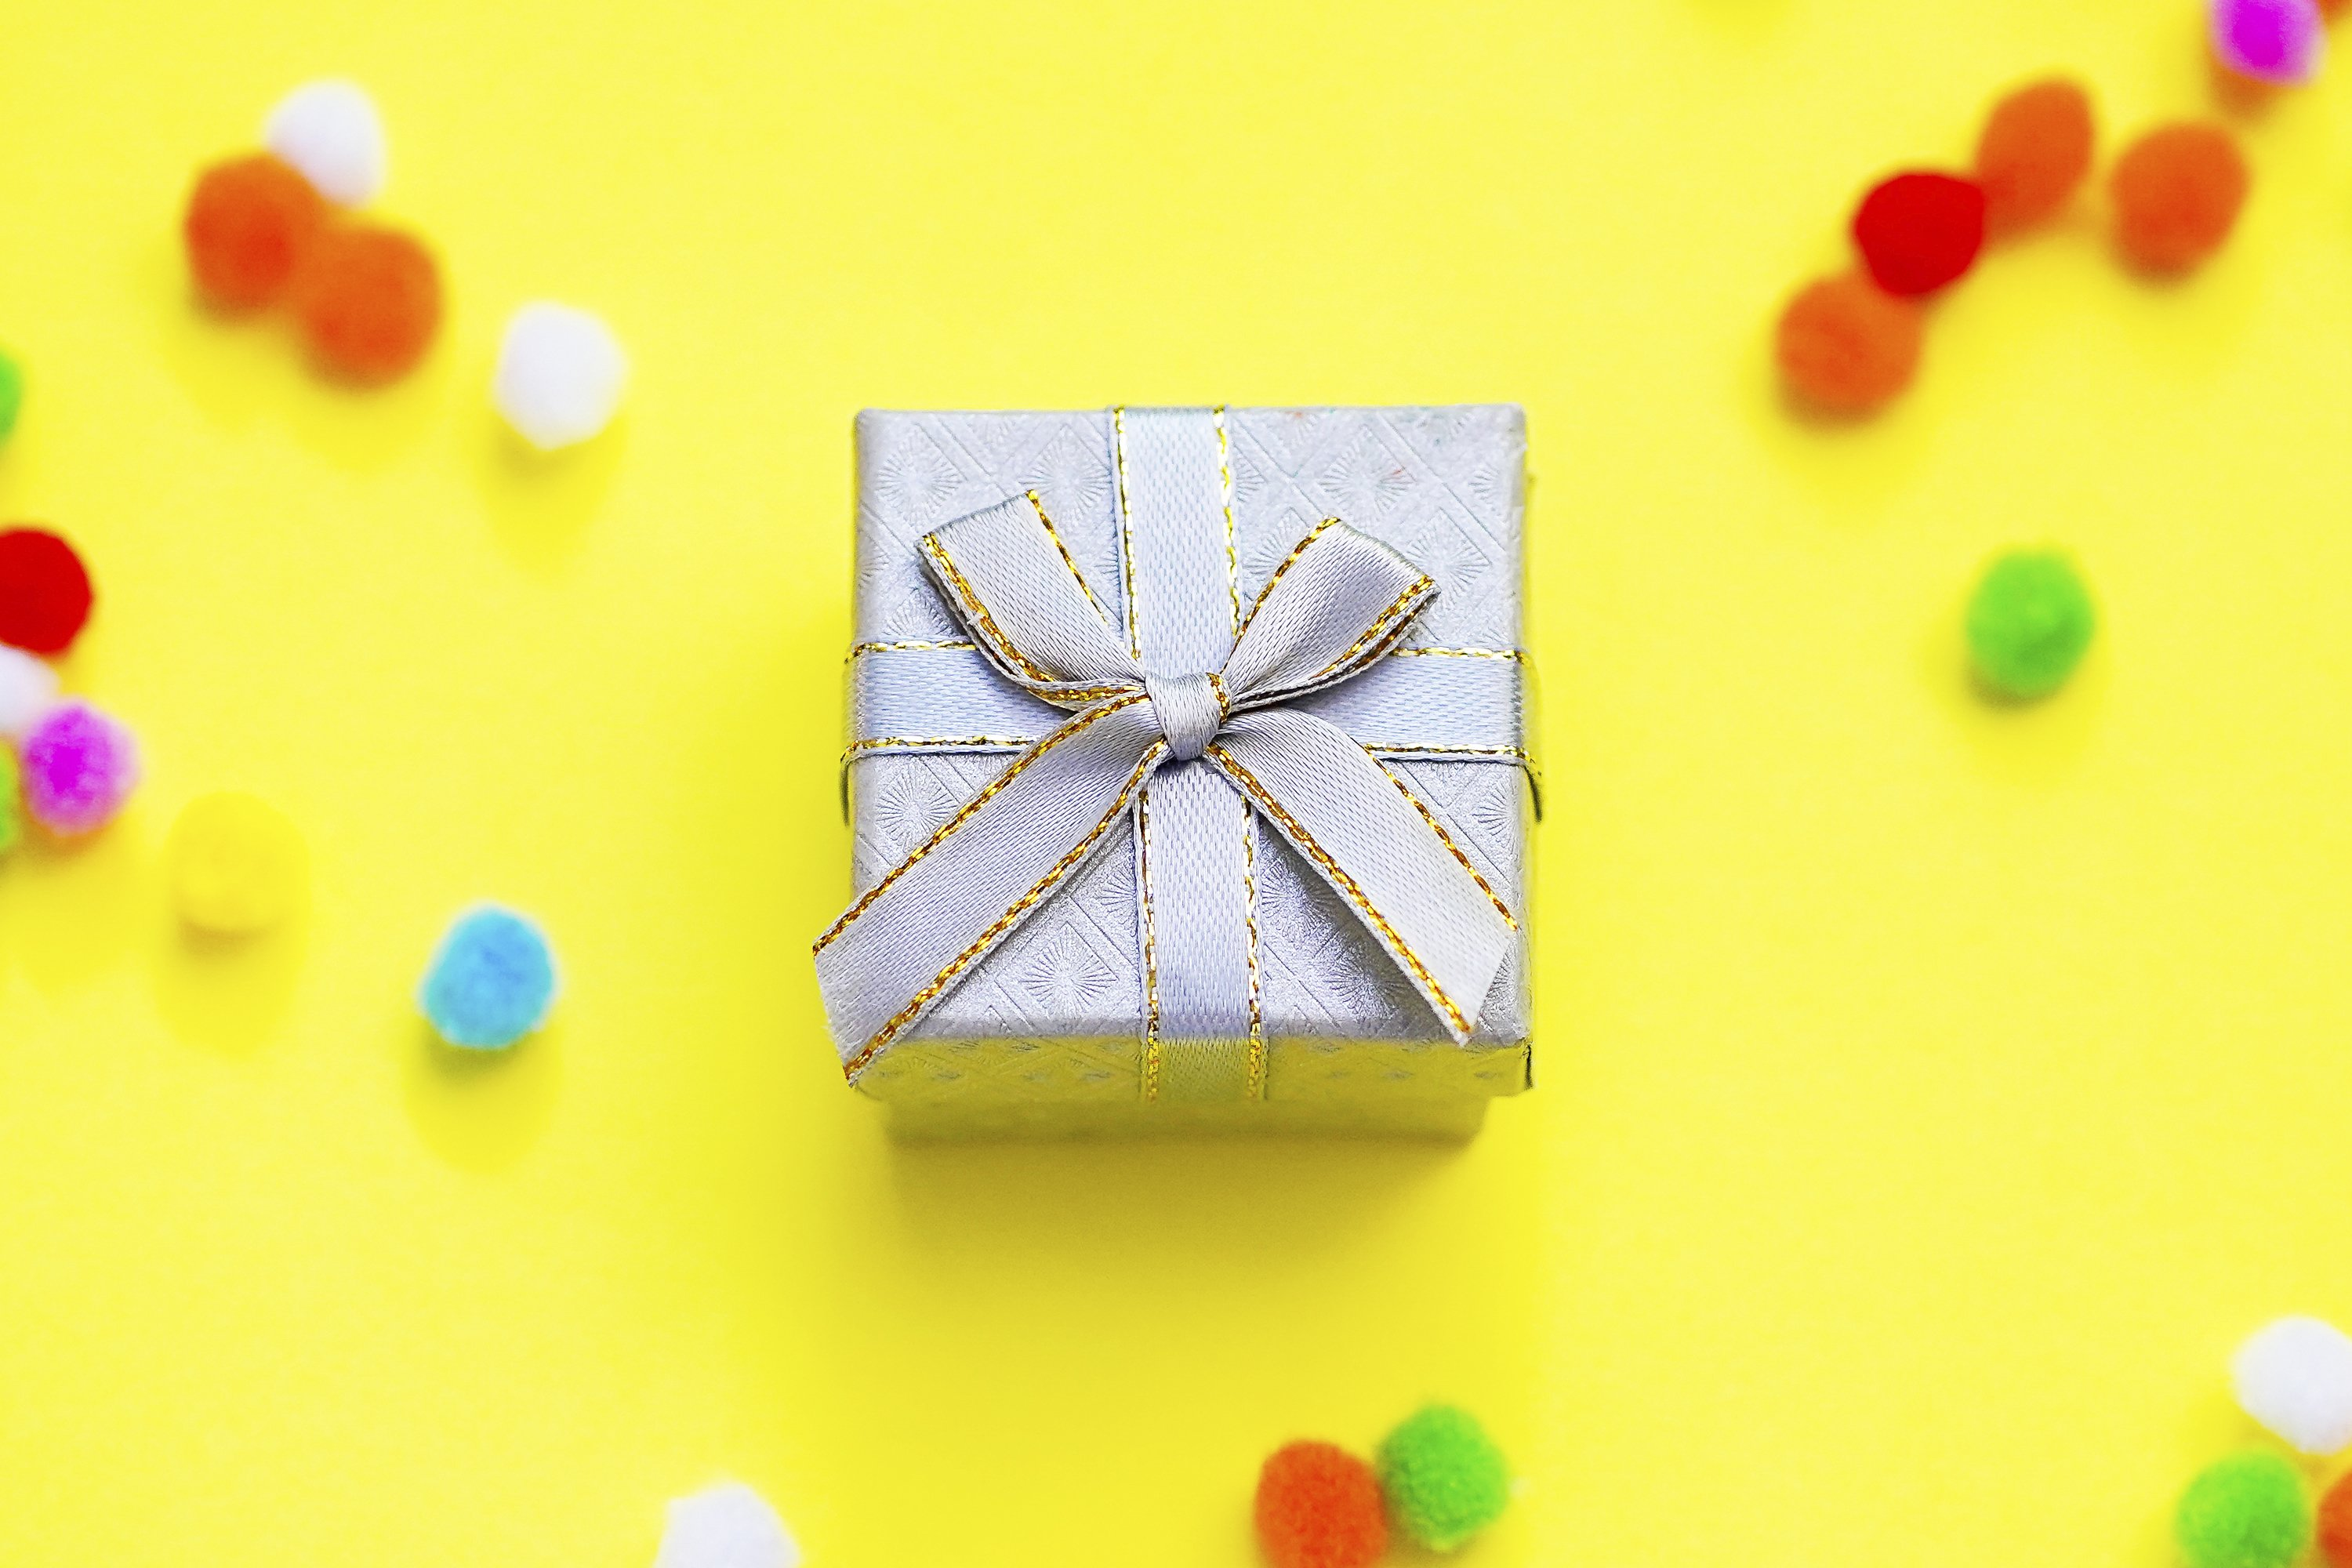 Gift box with multi-colored confetti on a yellow background example image 1